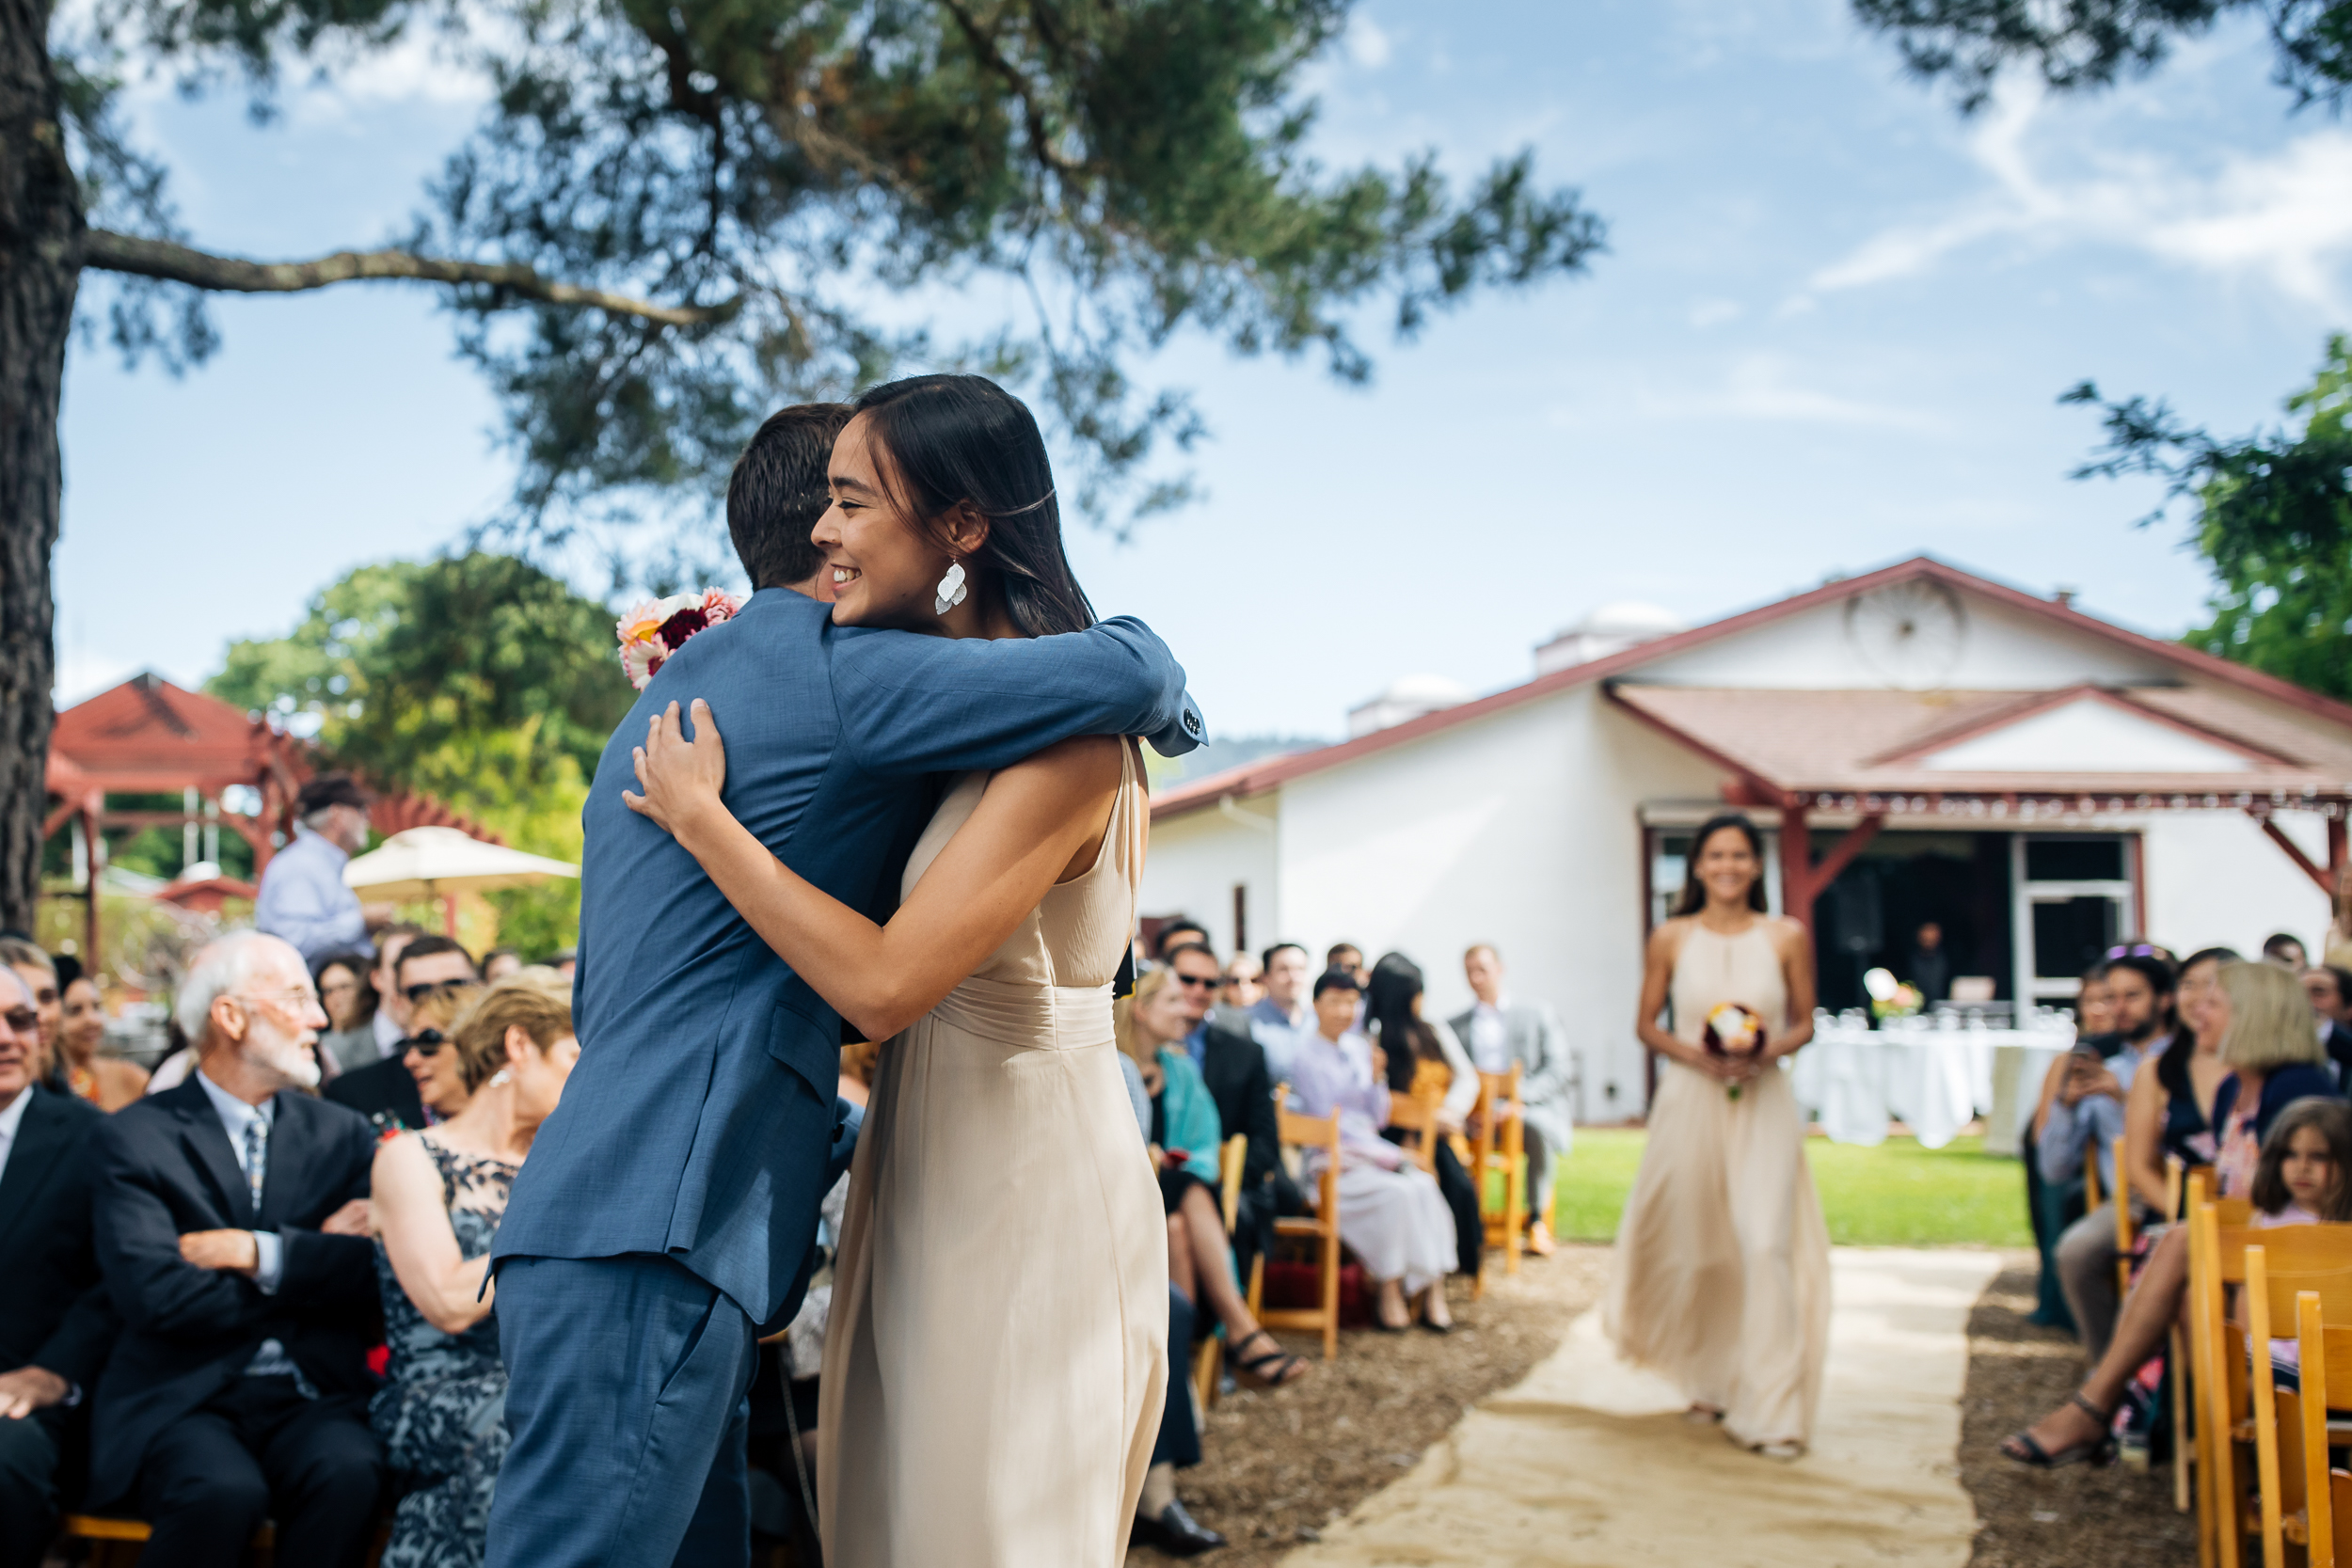 Rancho Nicasio Wedding 2018-148.jpg